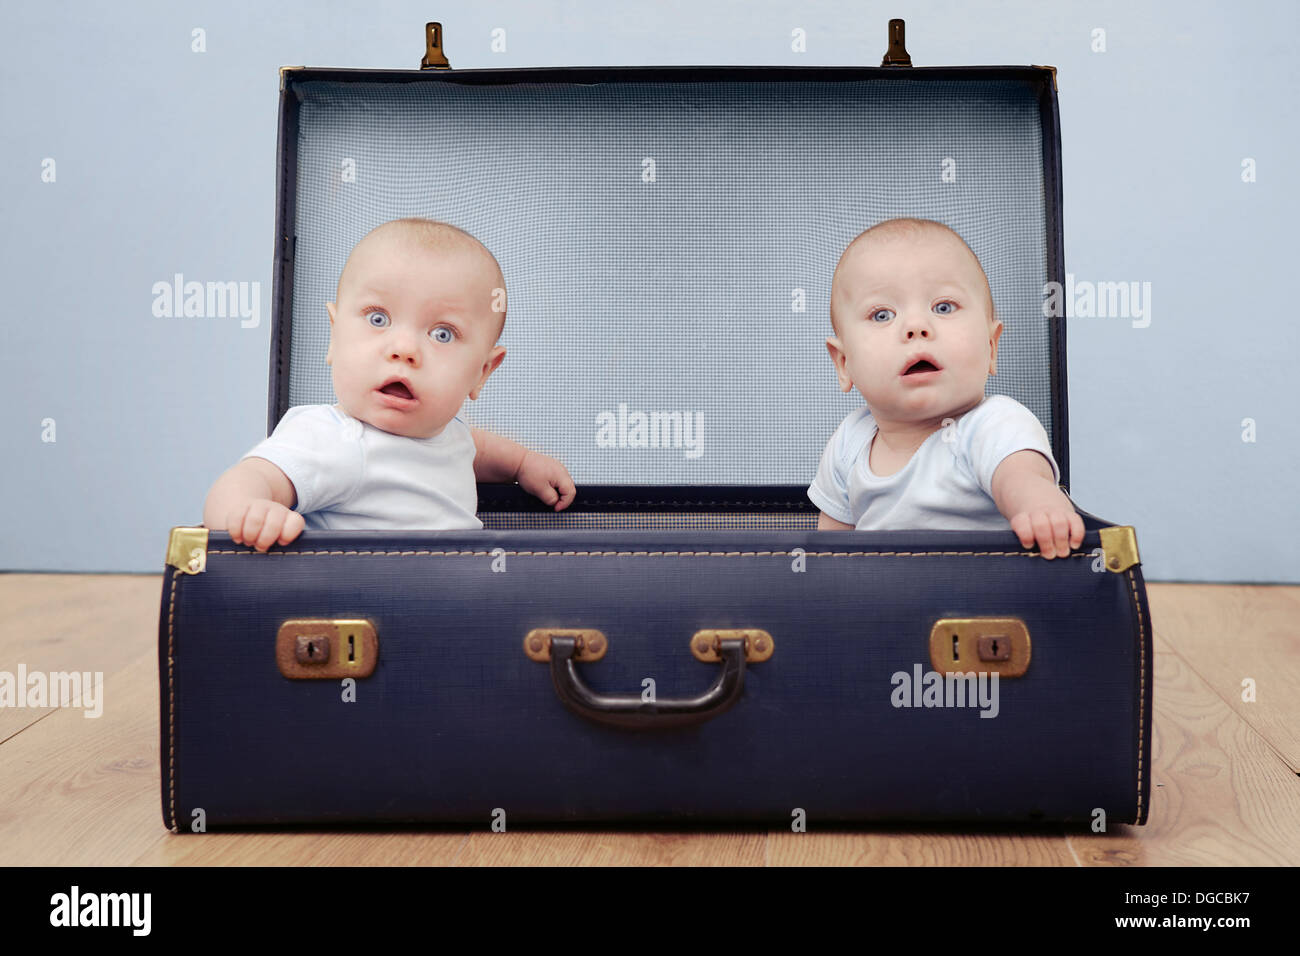 Two baby boys sitting in suitcase, portrait - Stock Image